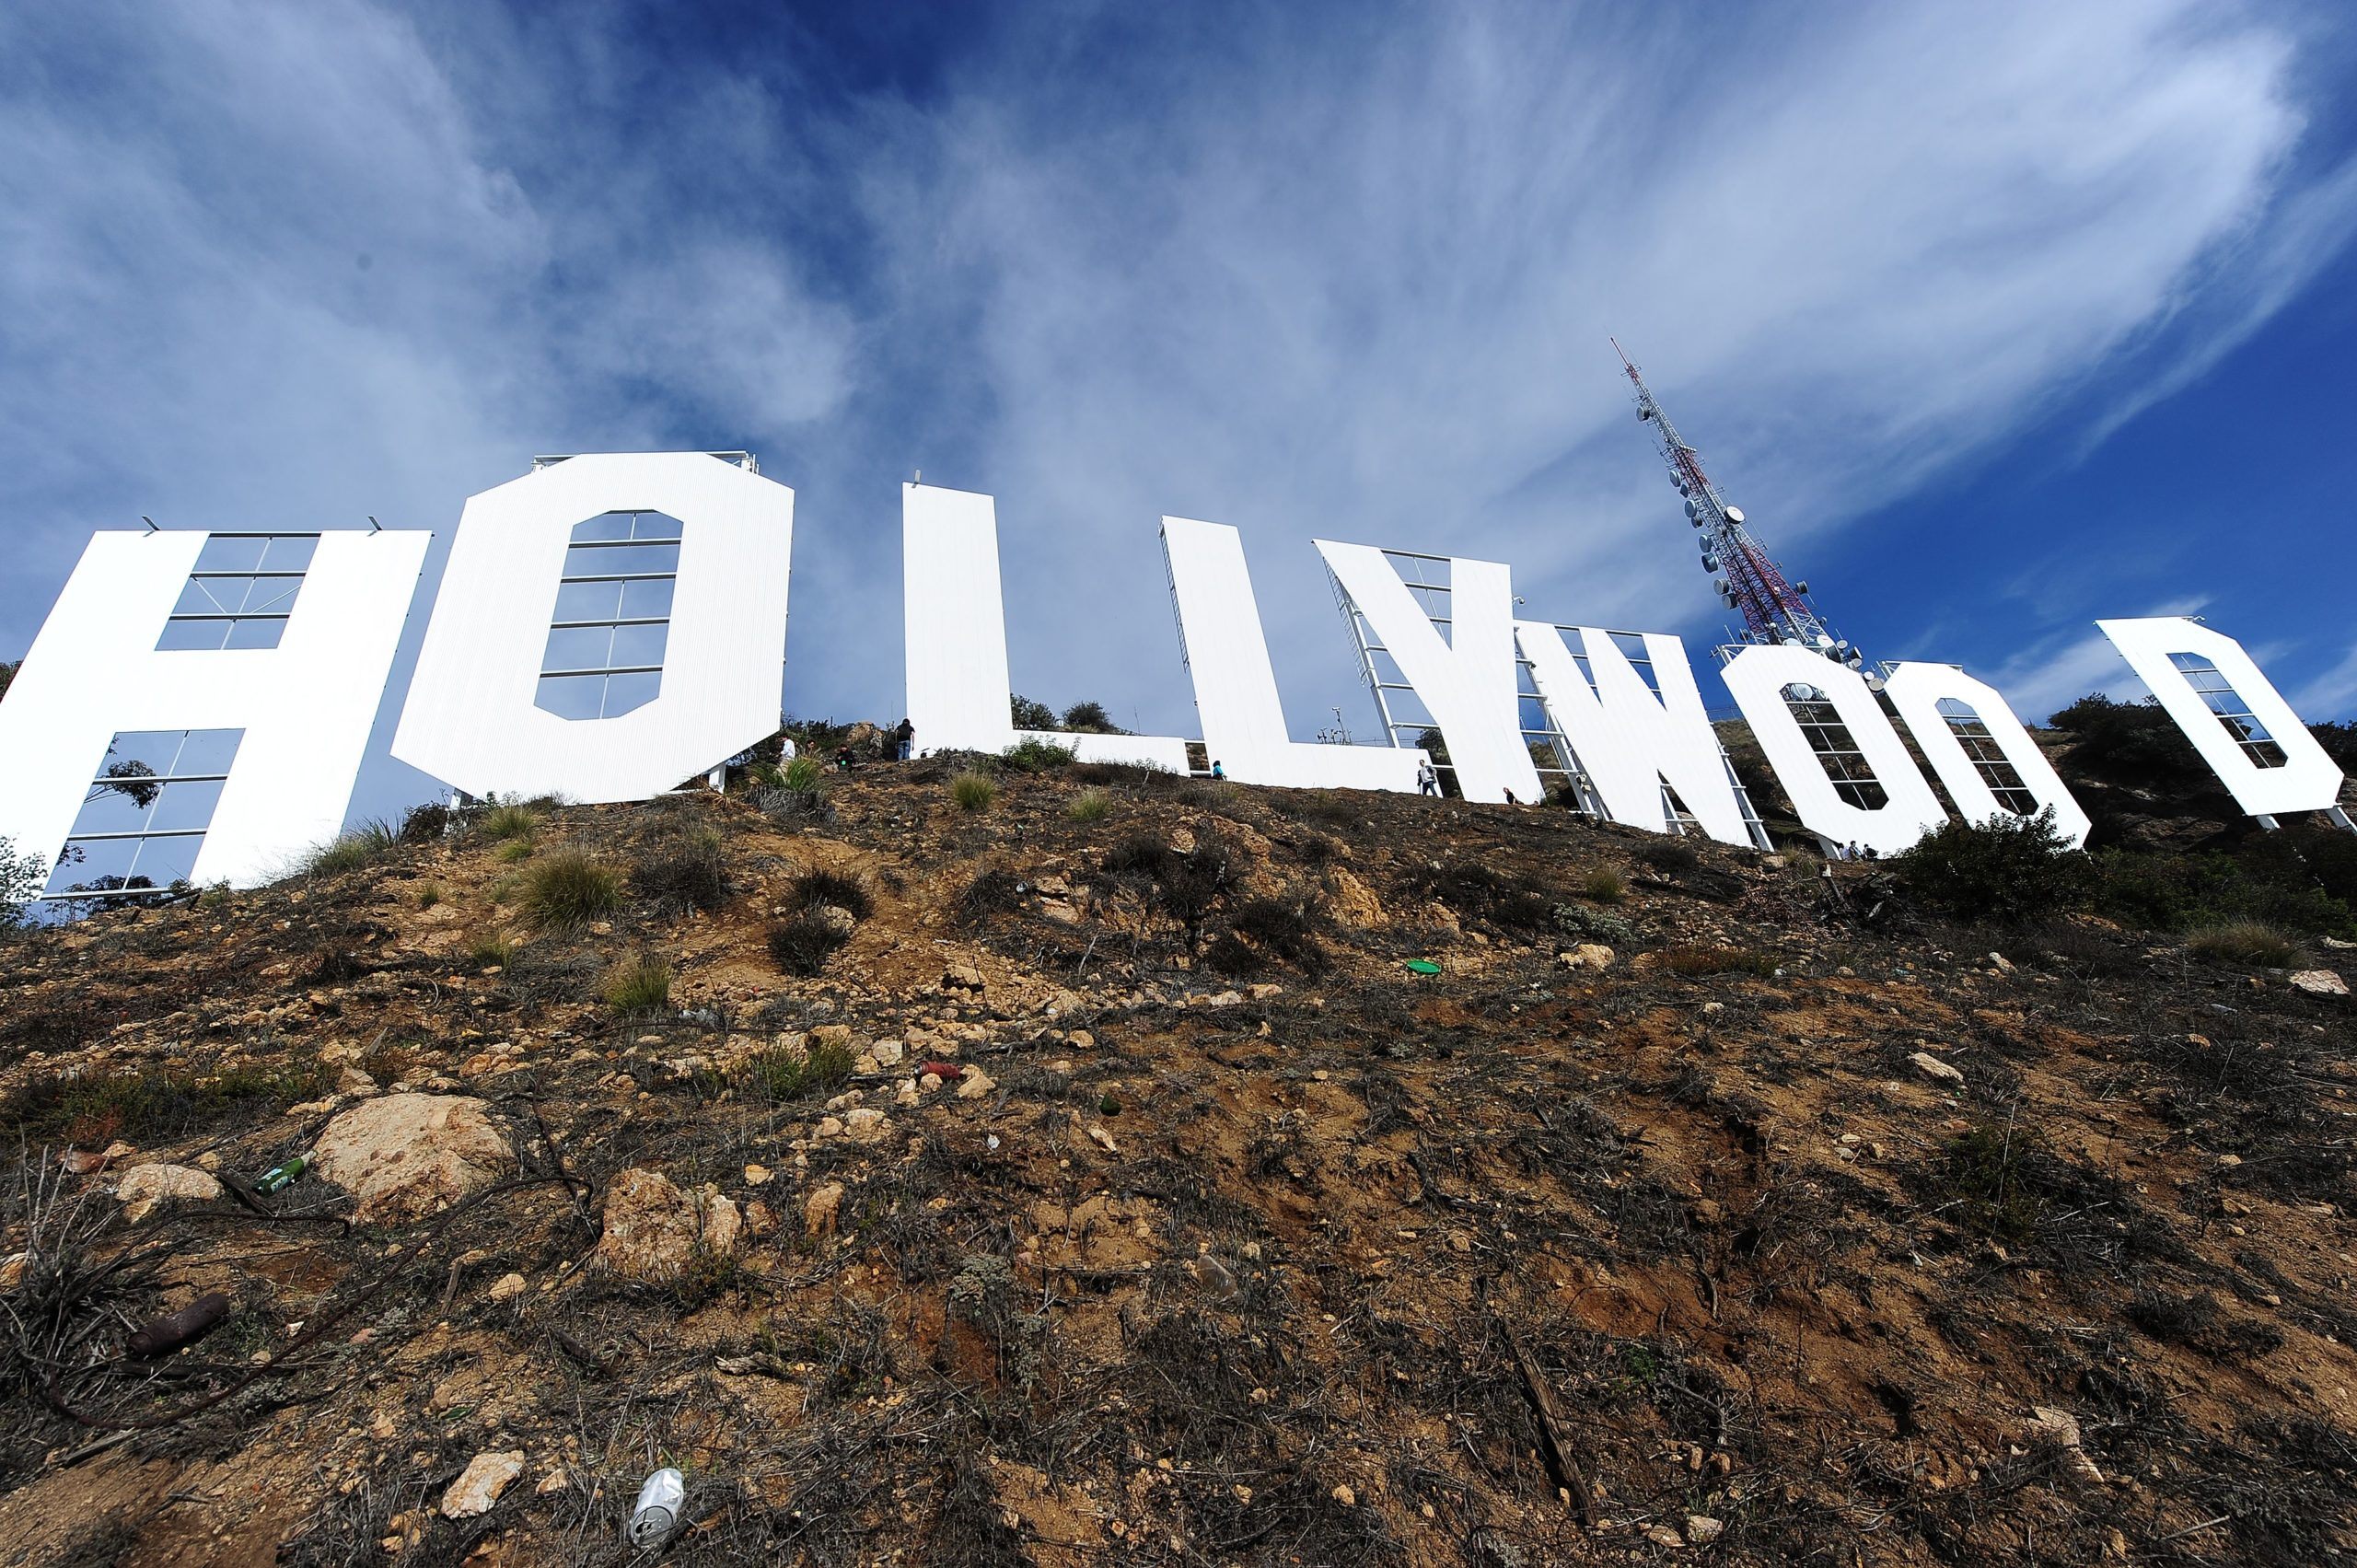 The freshly painted Hollywood Sign is seen after a press conference to announce the completion of the famous landmark's major makeover, December 4, 2012 in Hollywood, California. Some 360 gallons (around 1,360 liters) of paint and primer were used to provide the iconic sign with it most extensive refurbishment in almost 35 years in advance of it's 90th birthday next year. AFP PHOTO / Robyn Beck (Photo by Robyn BECK / AFP) (Photo by ROBYN BECK/AFP via Getty Images)